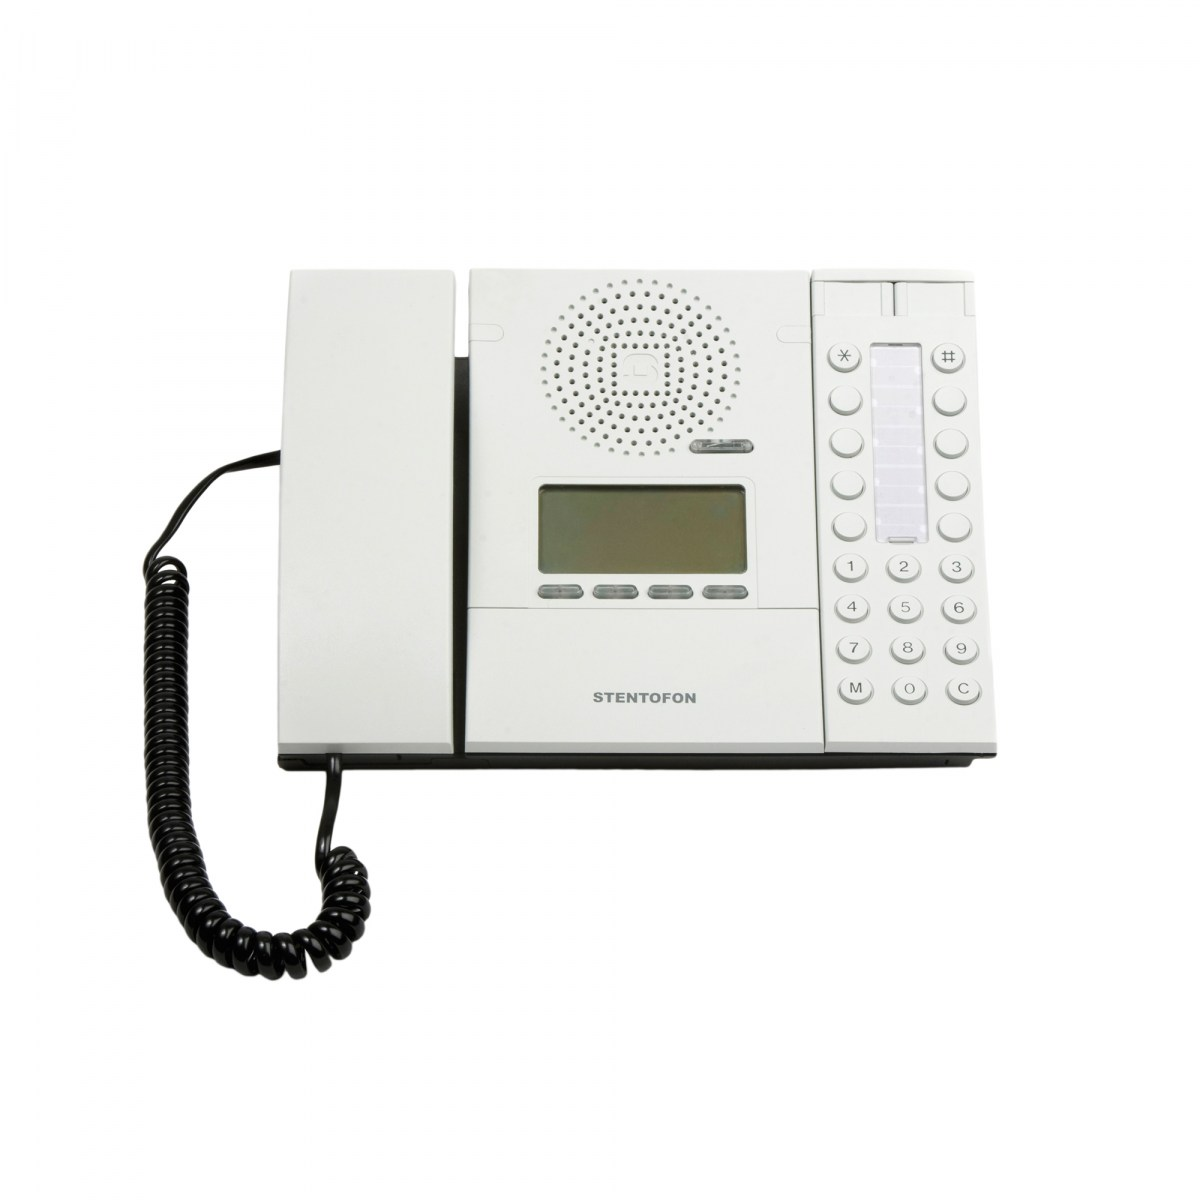 1008001000 IP Desk/Wall Station Display with Handset